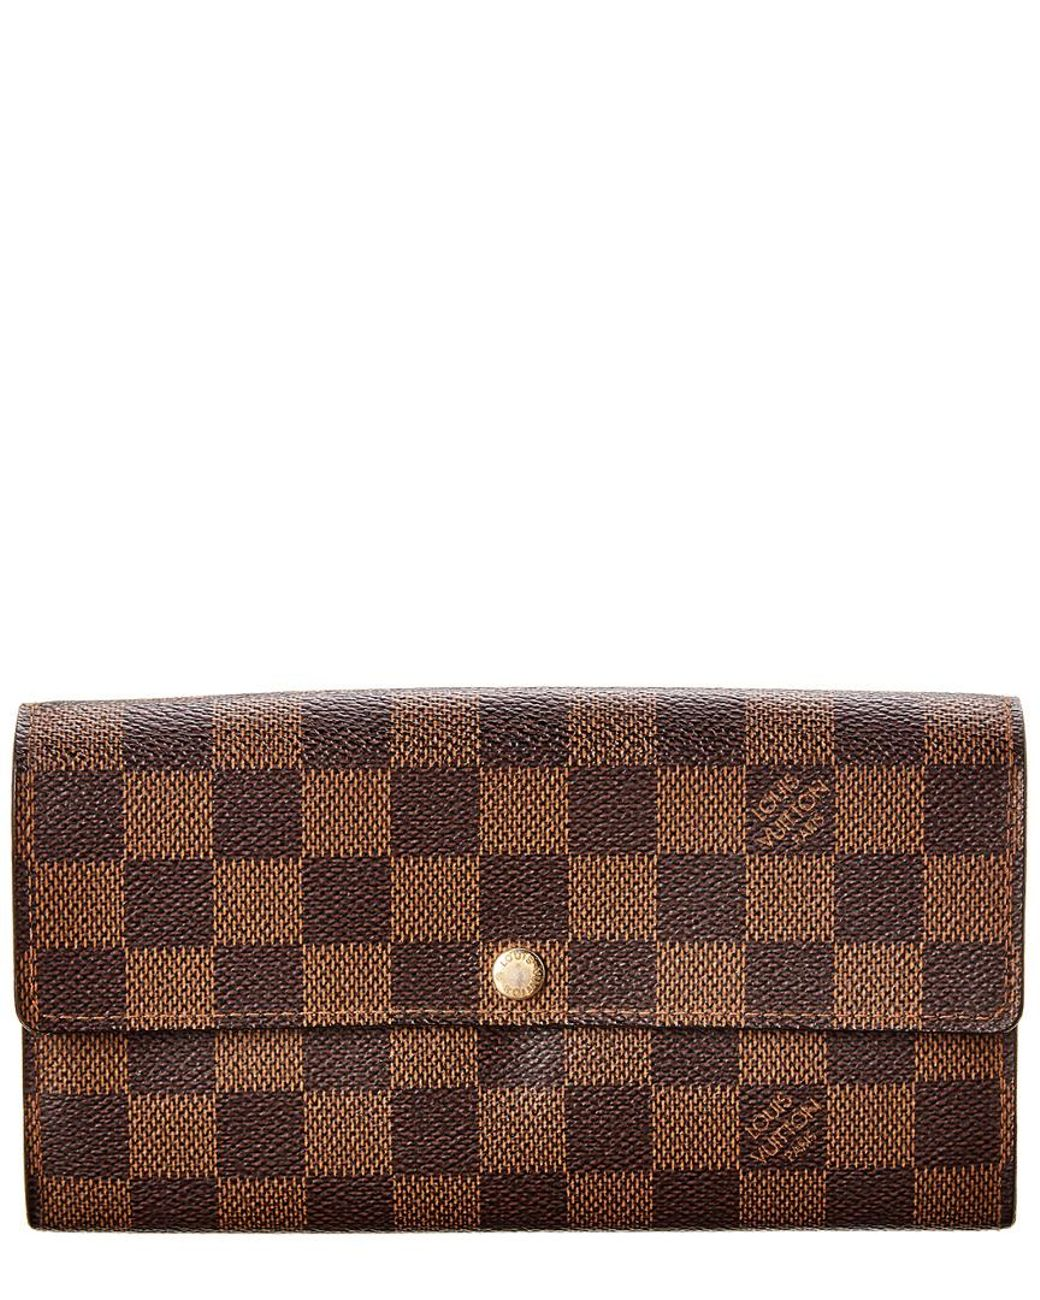 9ff8a7a30d9f Long-Touch to Zoom. Long-Touch to Zoom. 1  2. Louis Vuitton - Brown Damier  Ebene Canvas Sarah Wallet ...